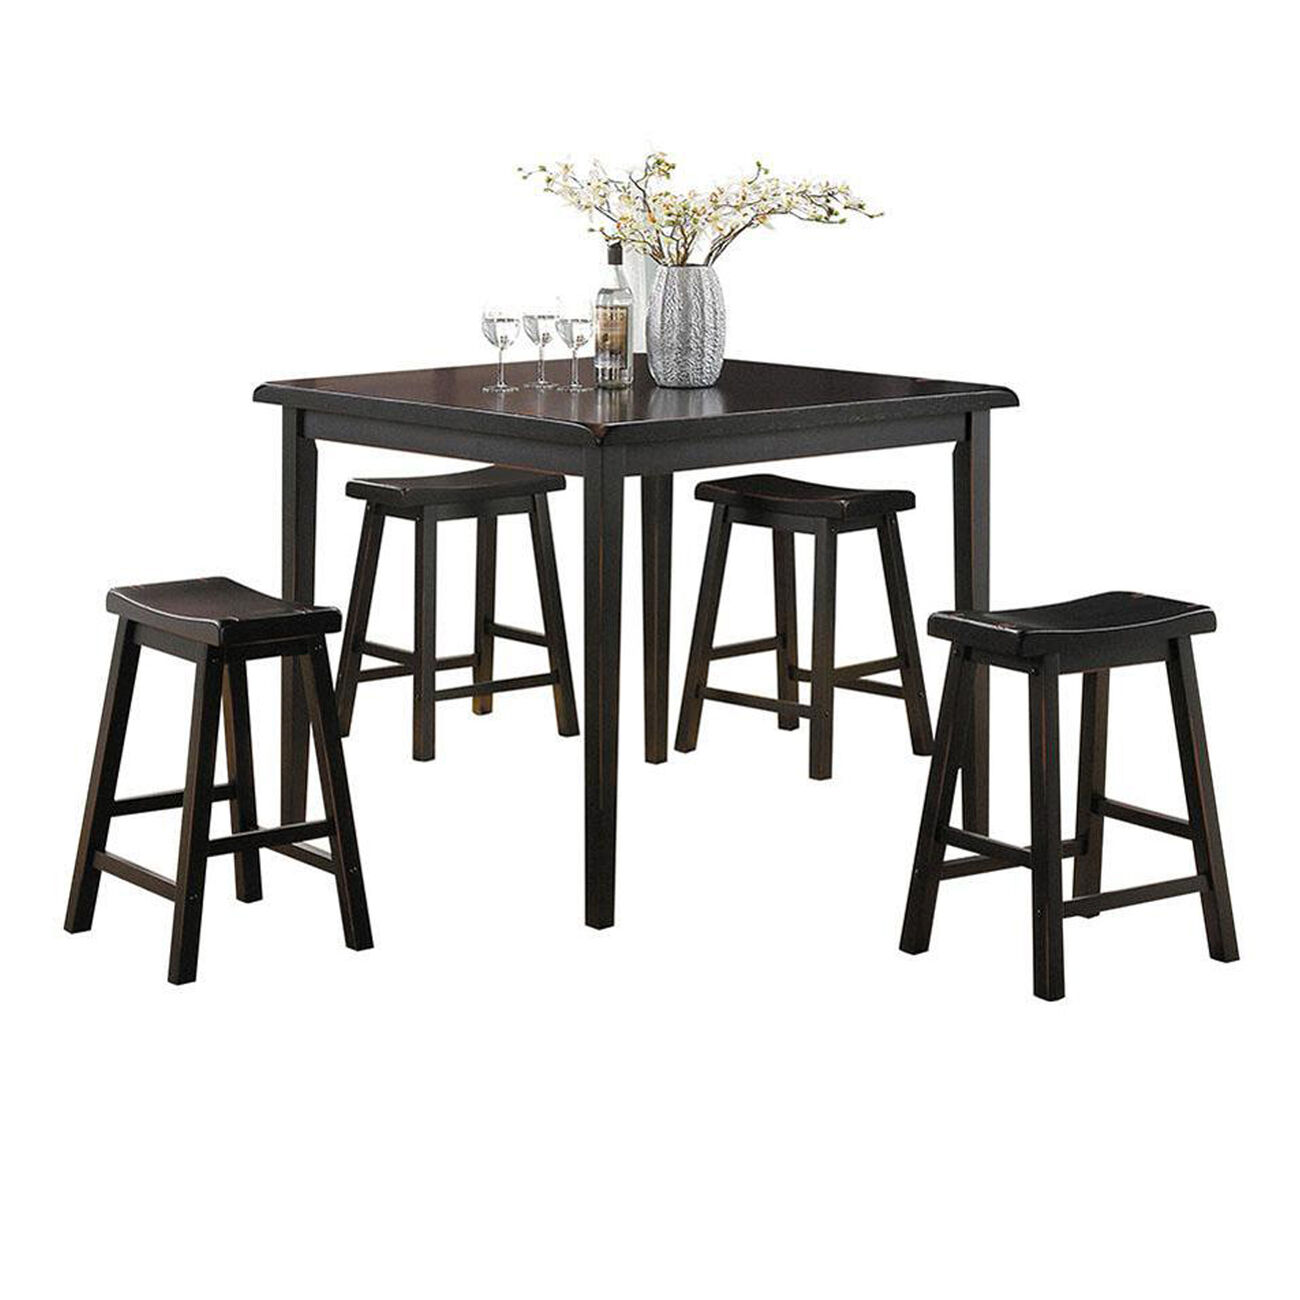 Gaucho 5 Piece Pack Counter Height Set, Black